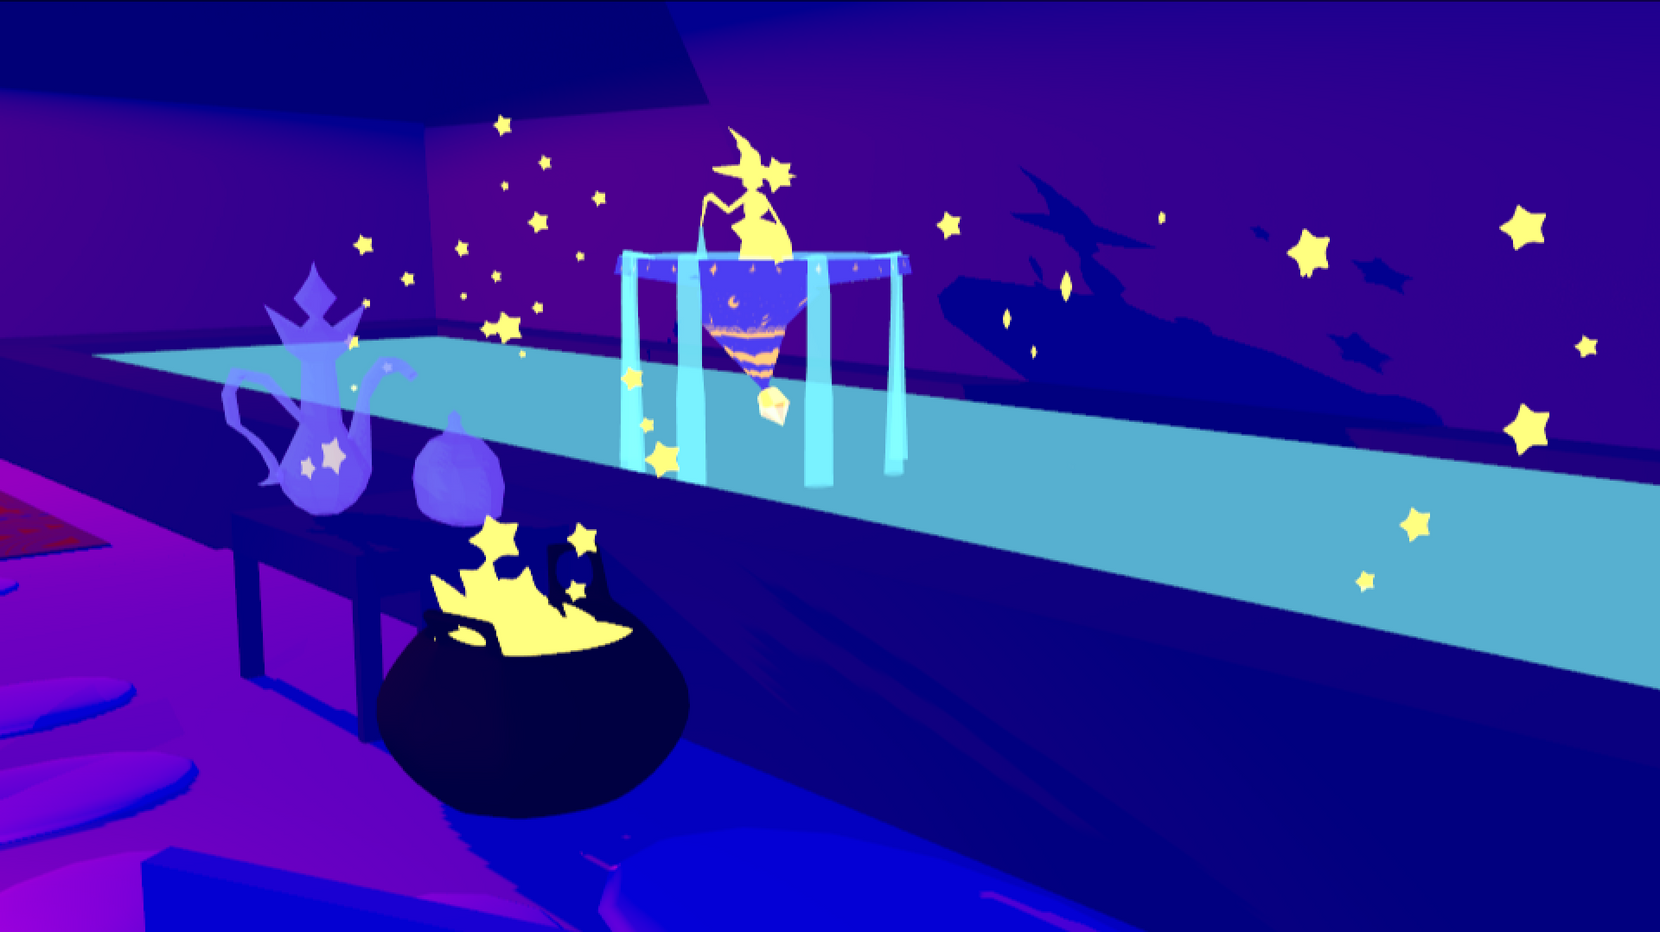 romain_cg_witchspa_nighttime_3.png